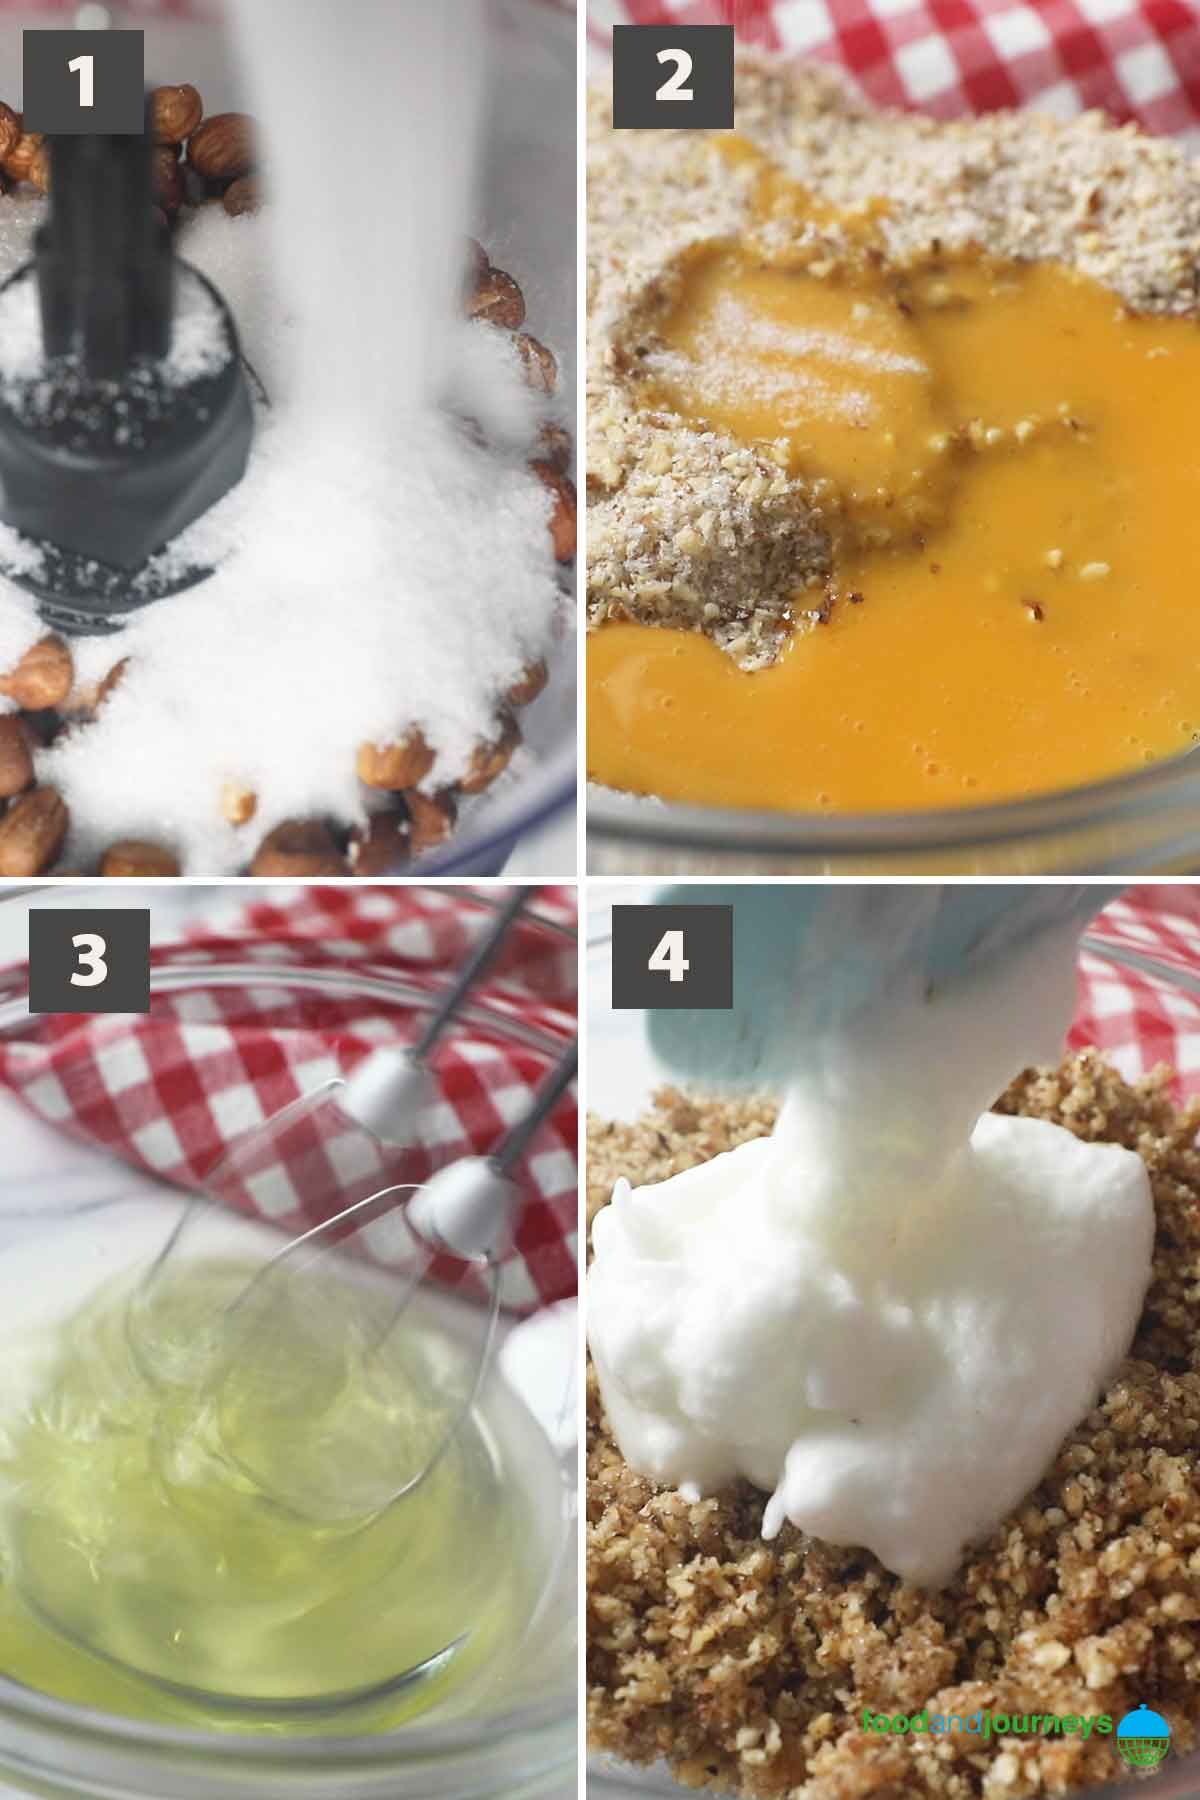 First part of a collage of images showing the step by step process on how to make Torta di Nocciole.